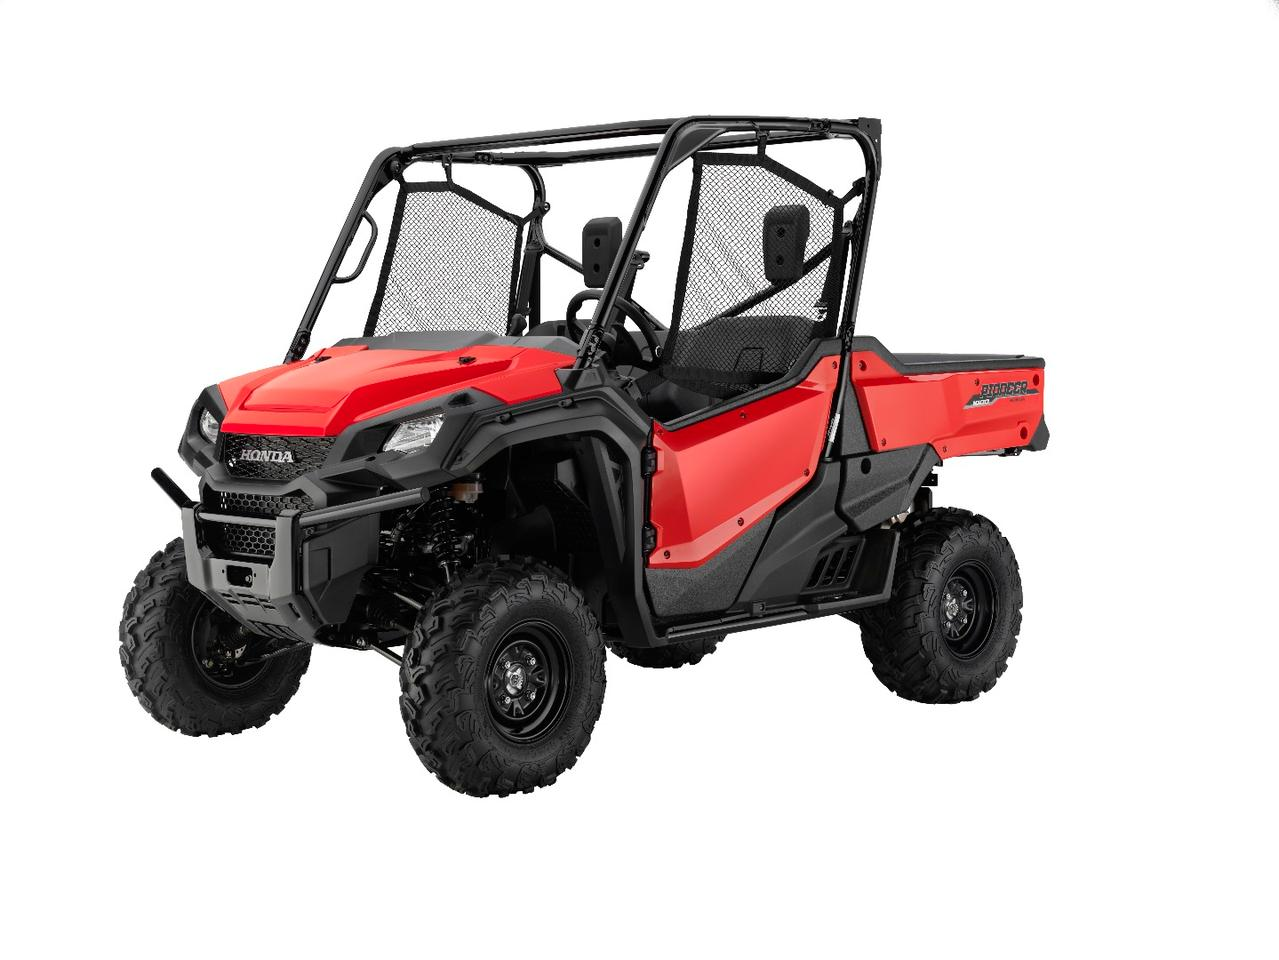 The Honda Pioneer 1000 EPS is a three-seat UTV with power steering and paddle shifting